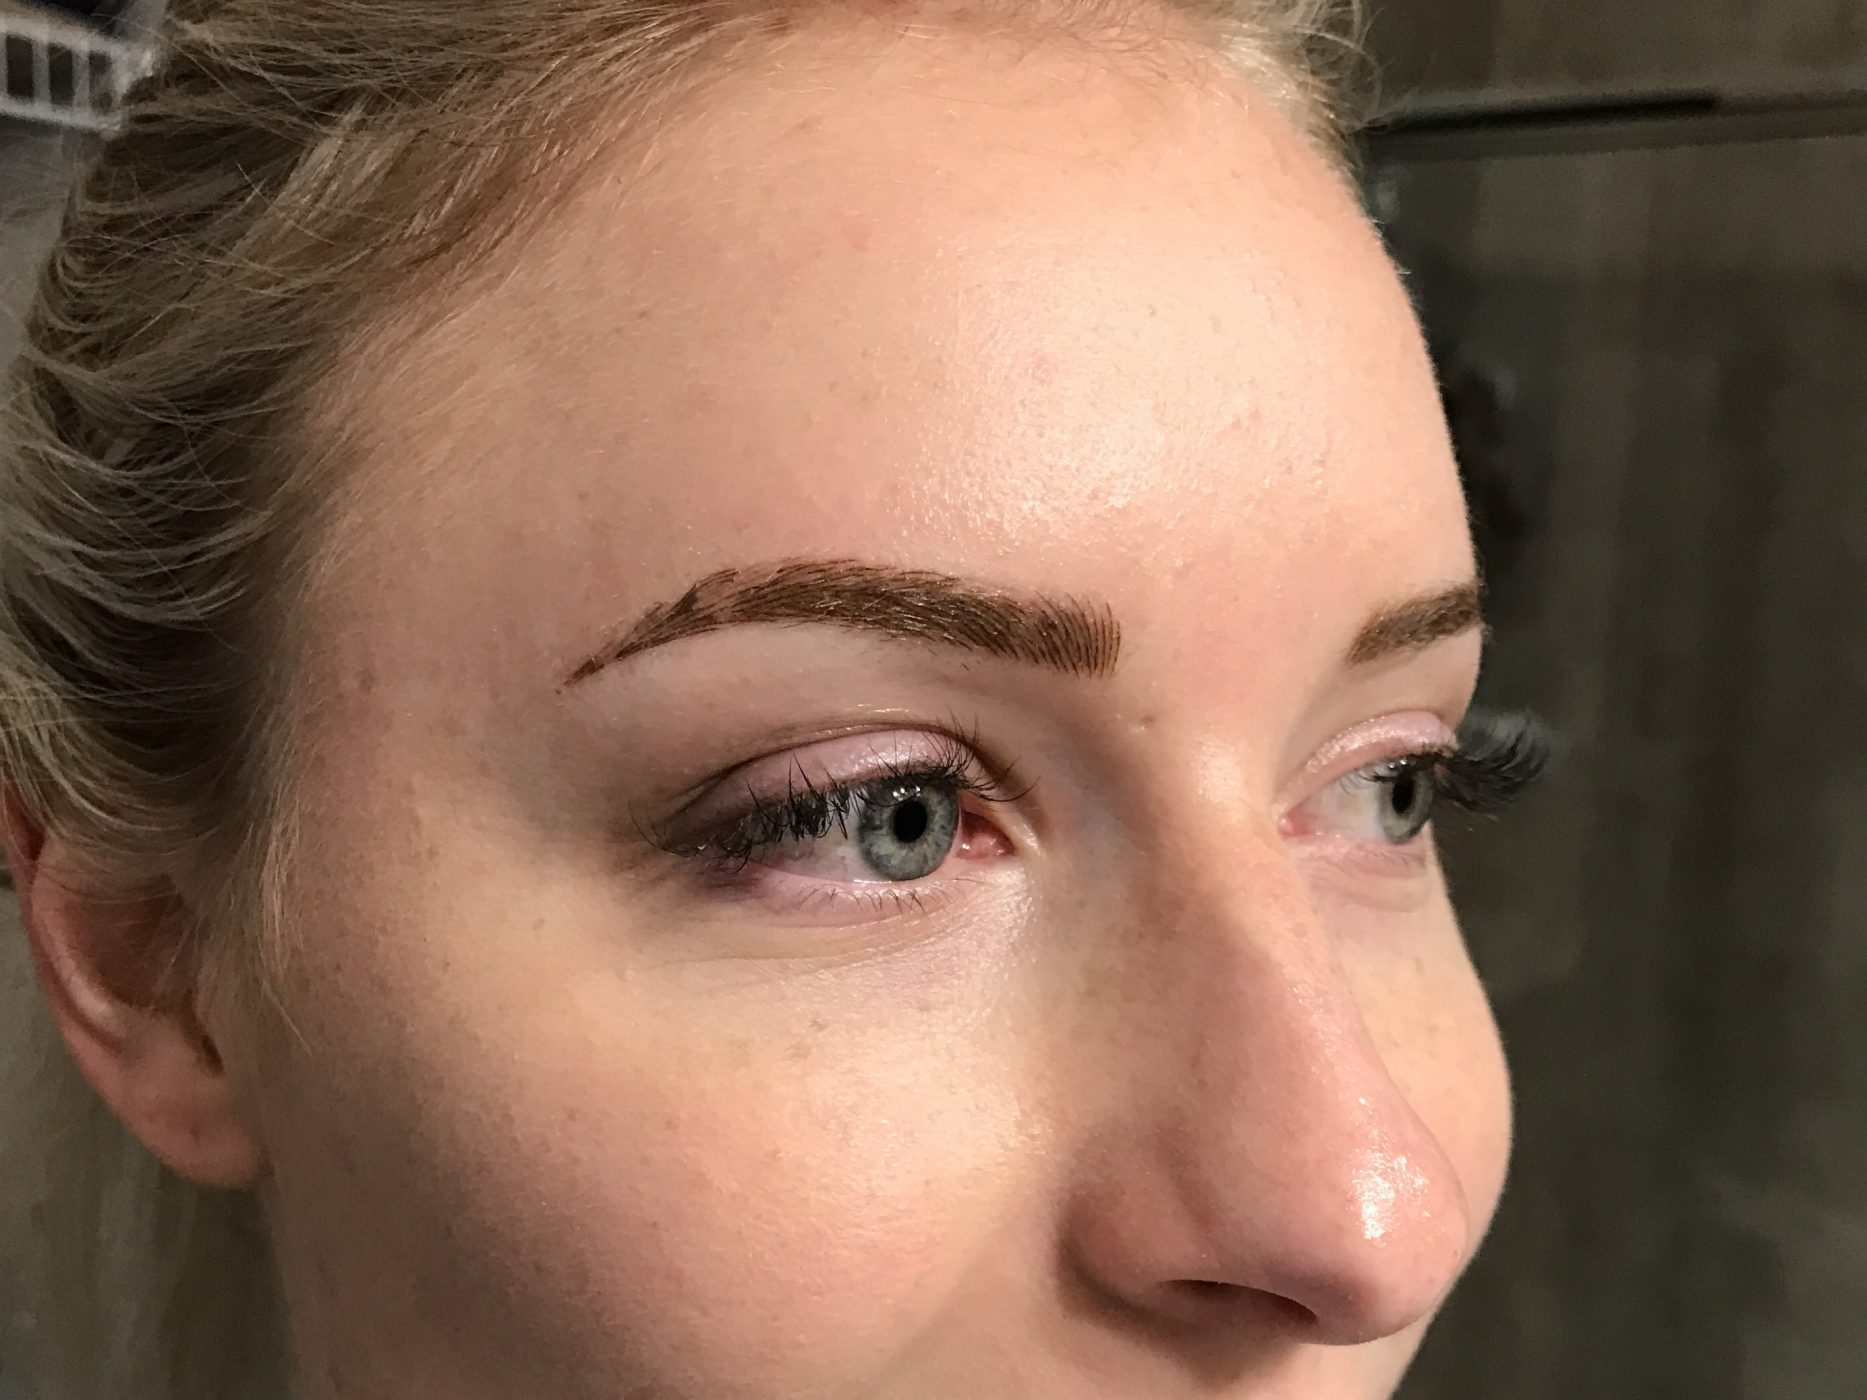 Healing Process of Microblading